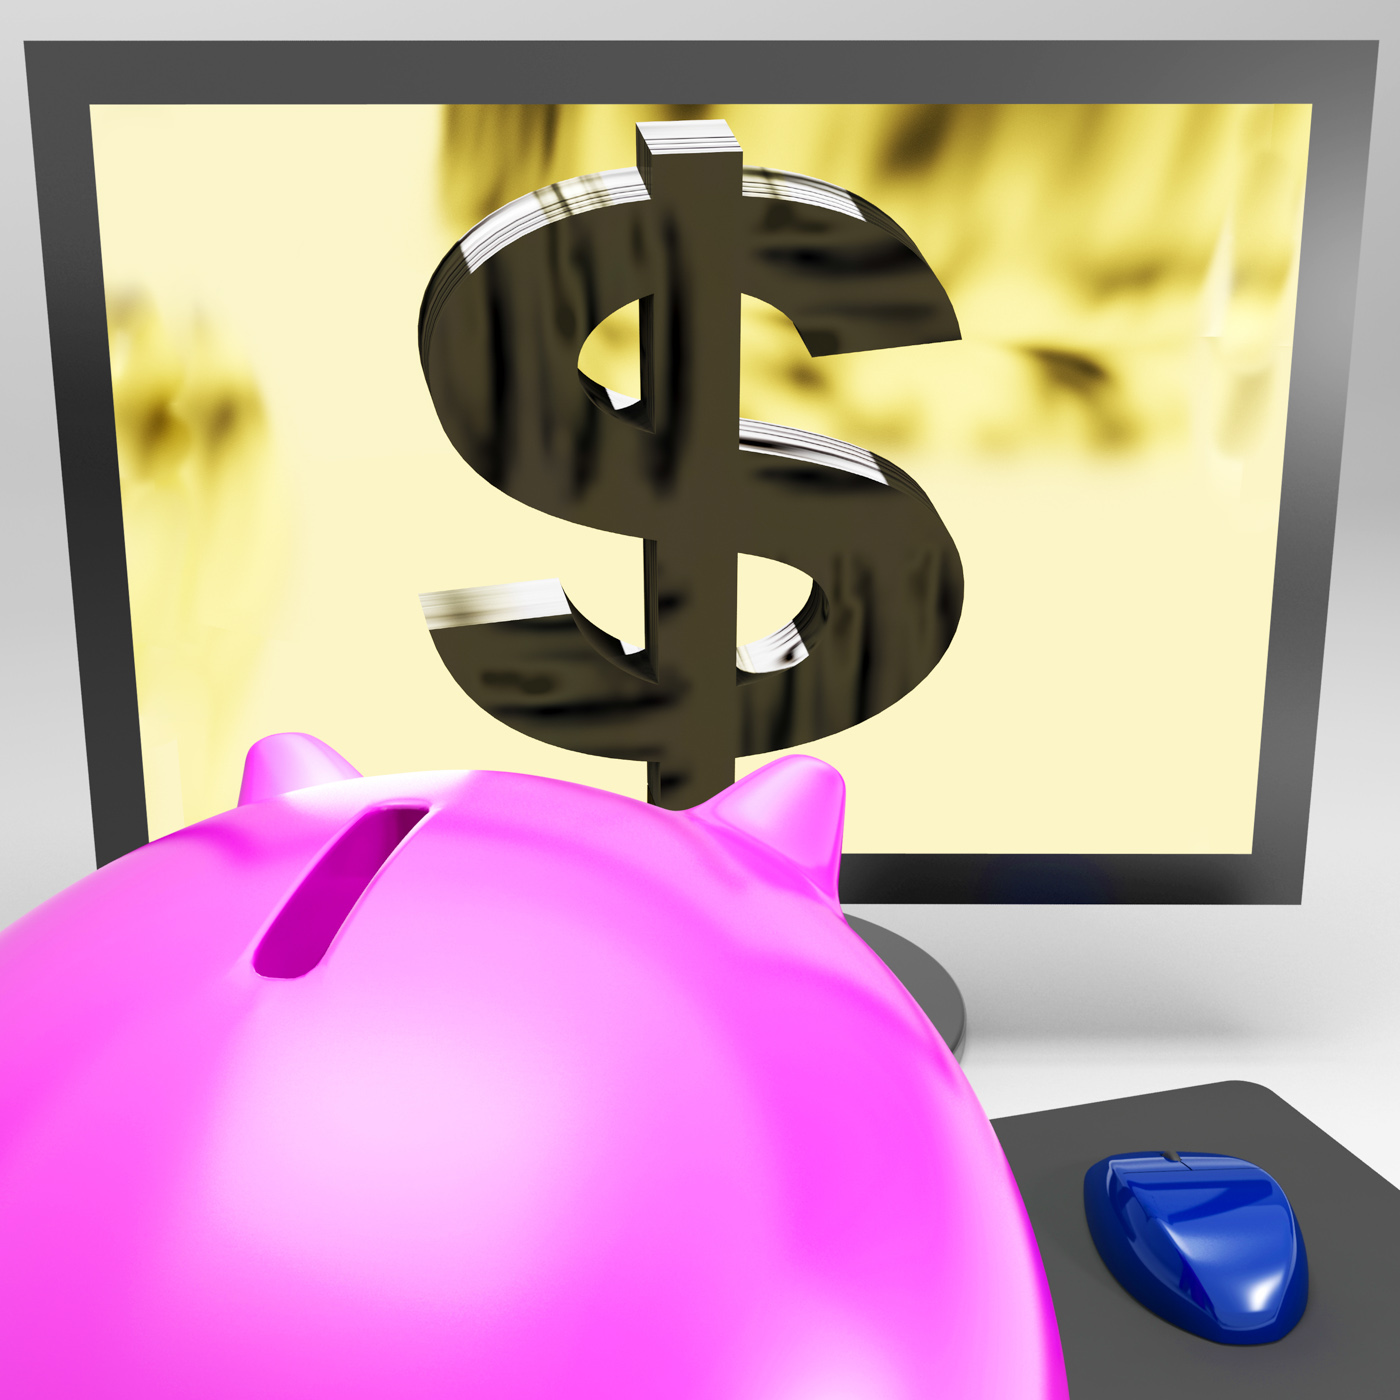 Dollar Symbol On Monitor Shows American Success, Money, Value, Success, Screen, HQ Photo